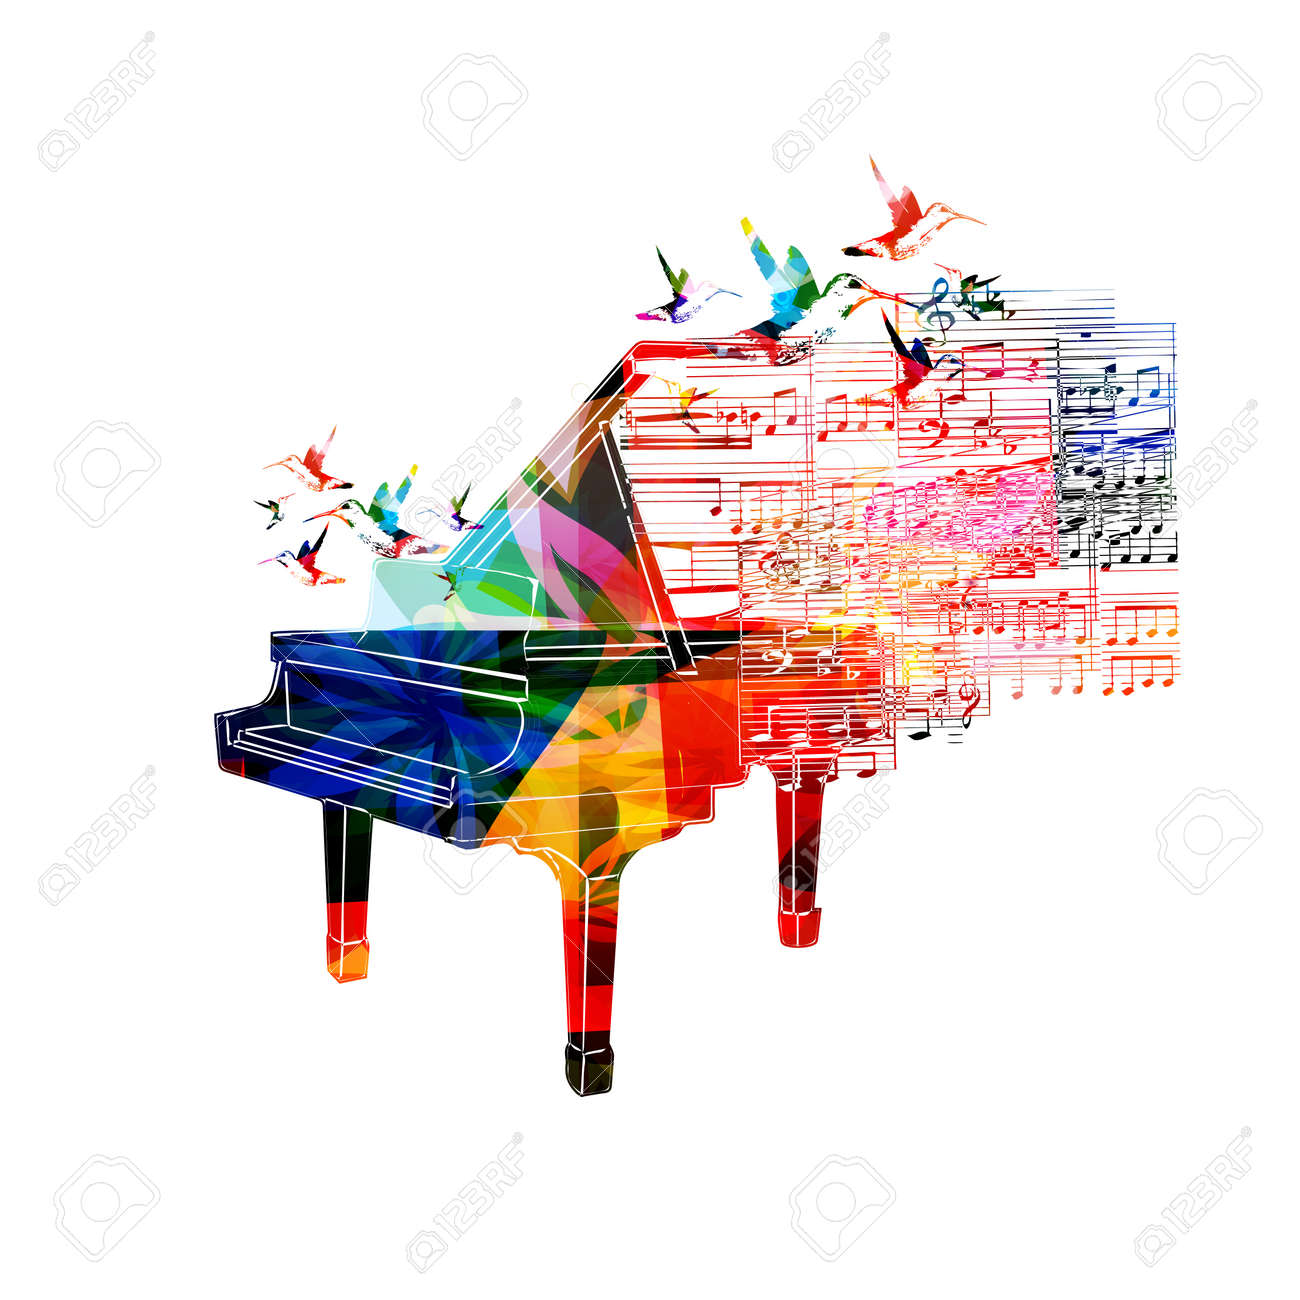 Colorful Piano Design With Hummingbirds Stock Vector